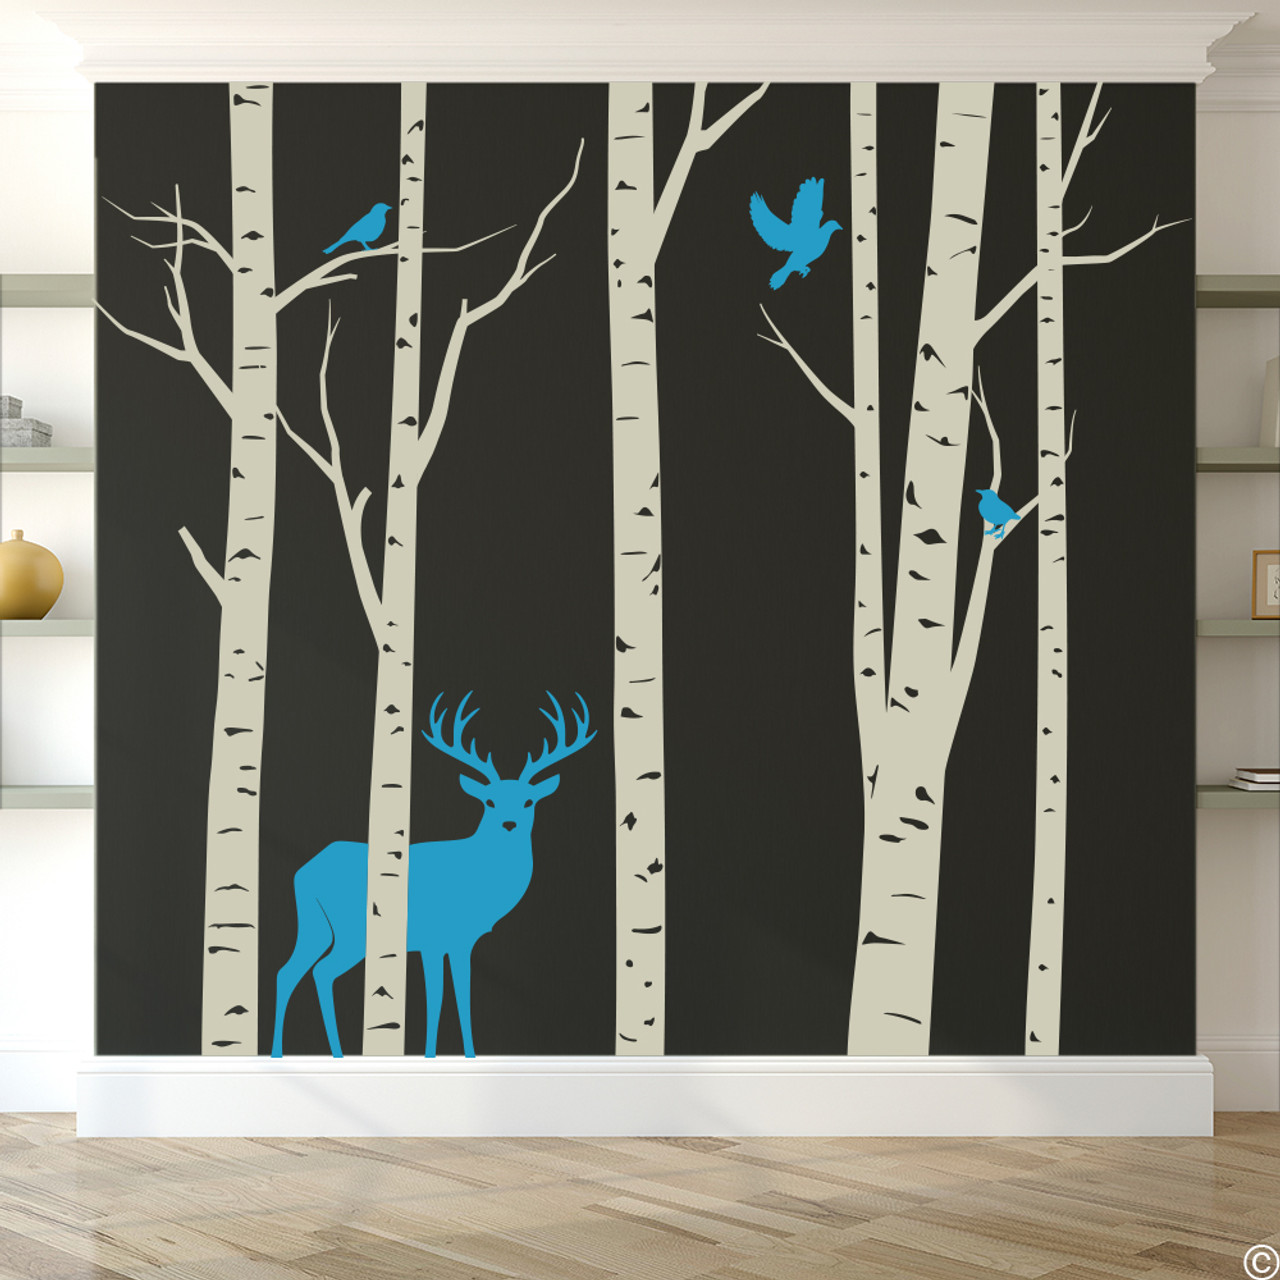 Aspen Trees mural with deer and birds vinyl wall decal in warm grey and light blue.